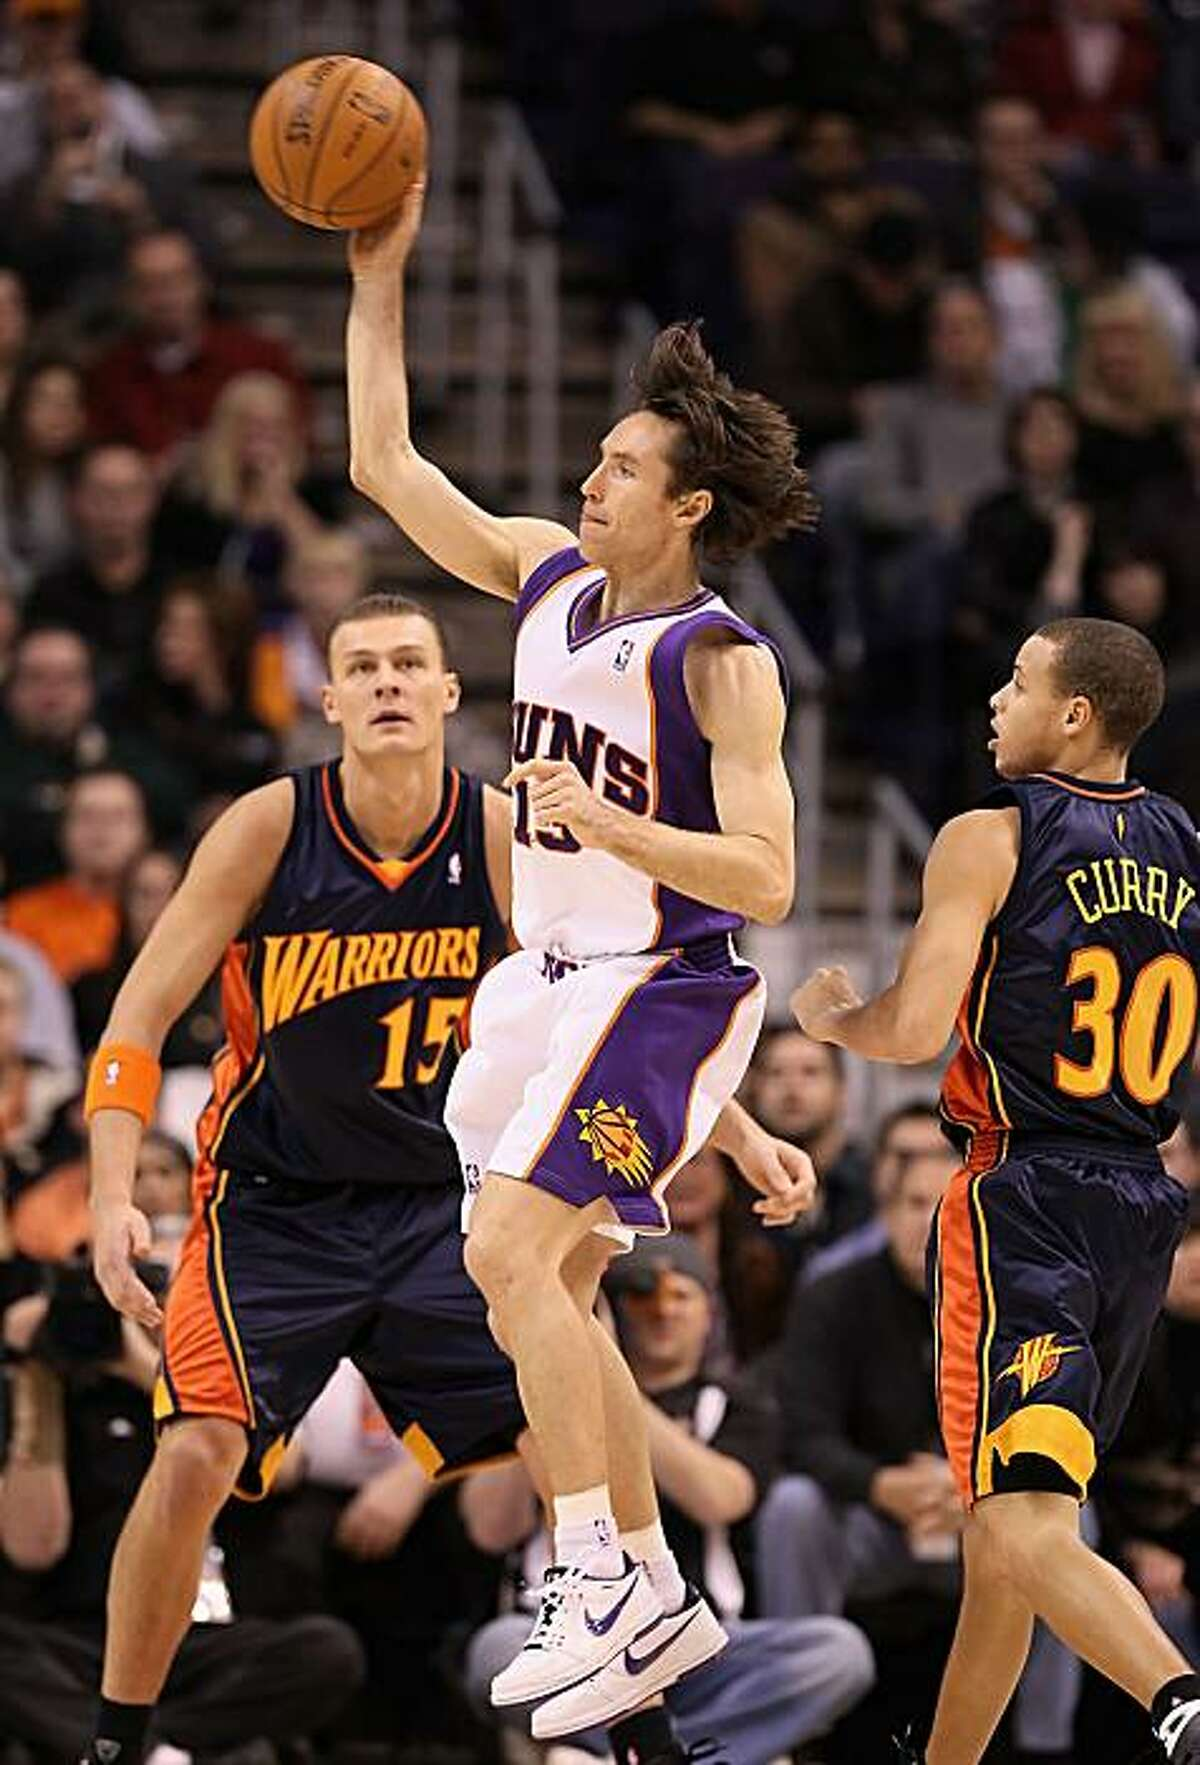 Steve Nash of the Phoenix Suns passes the ball against the Golden State Warriors on Saturday in Phoenix.